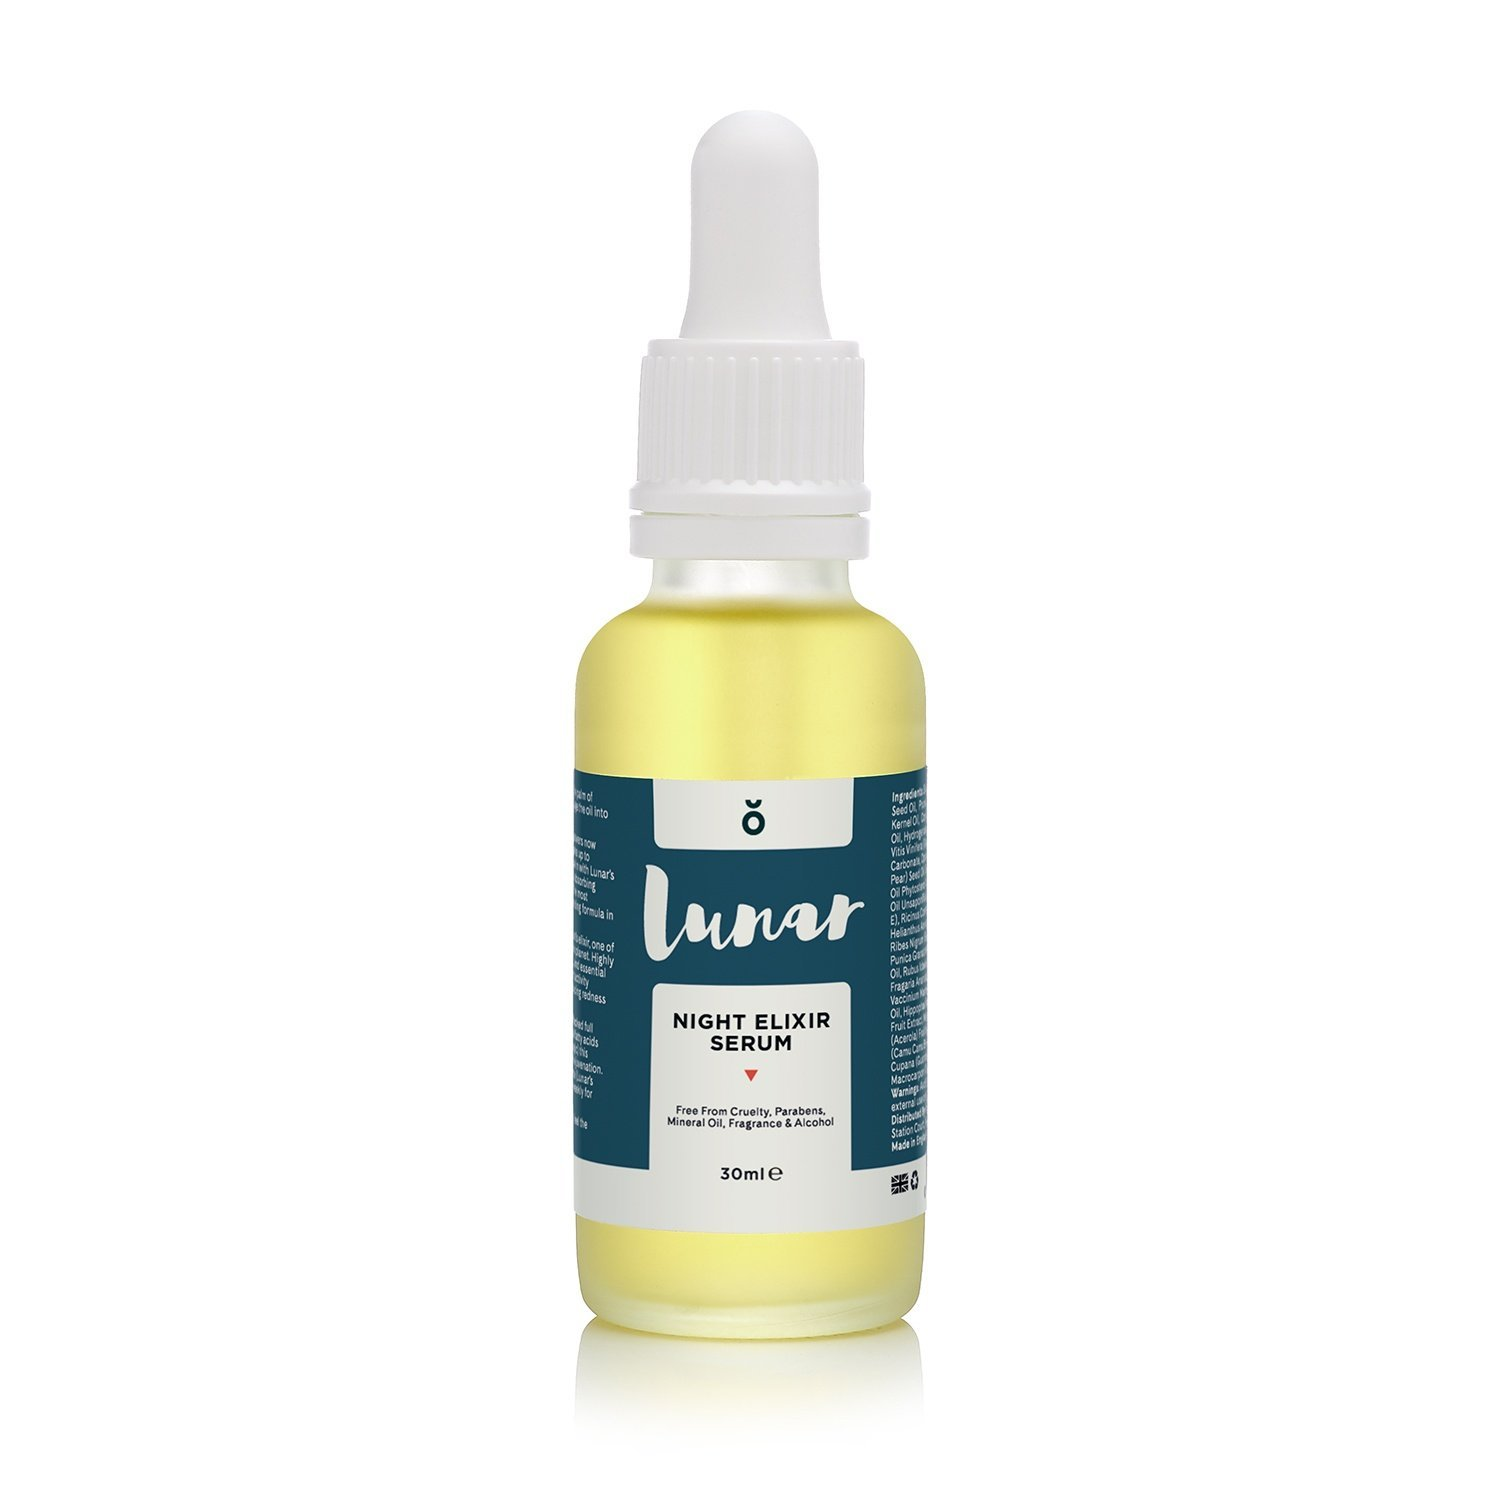 Night Elixir Serum by Lunar Glow. An Anti Aging Night Repair Serum for your Face and Skin - 1 fl.oz / 30ml.